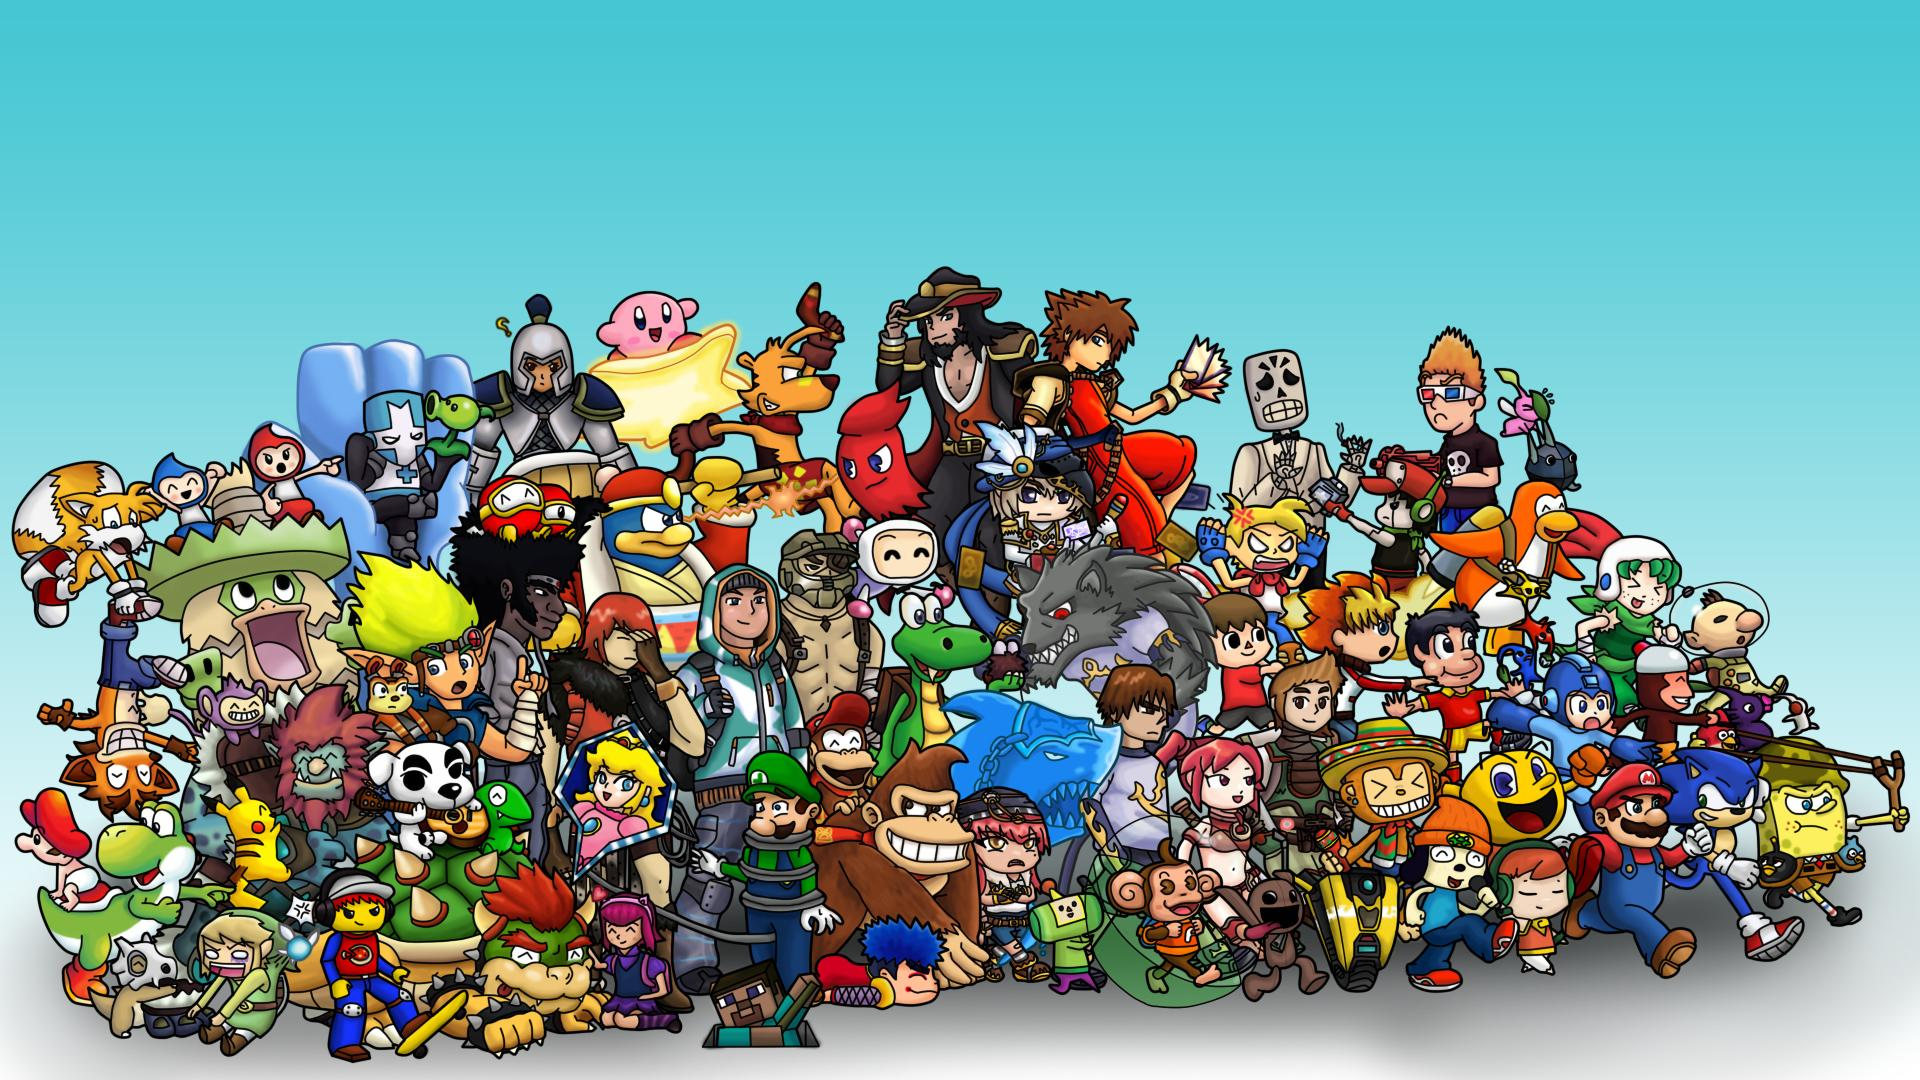 Classic Video Games Wallpaper Posted By John Walker